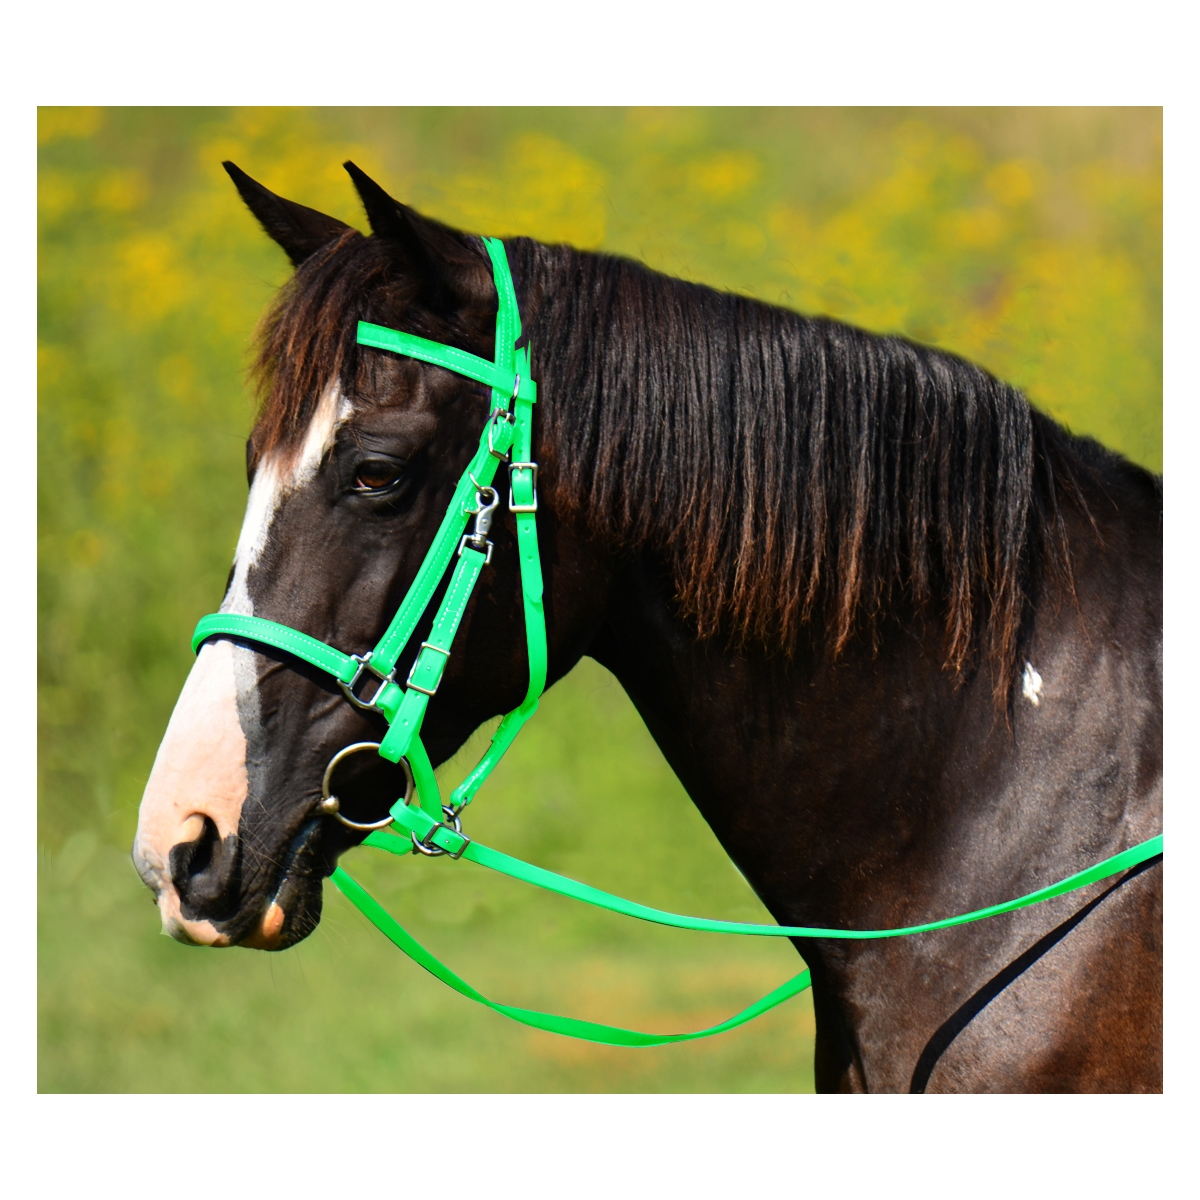 Lime Green Traditional Halter Bridles With Bit Hanger Two Horse Tack